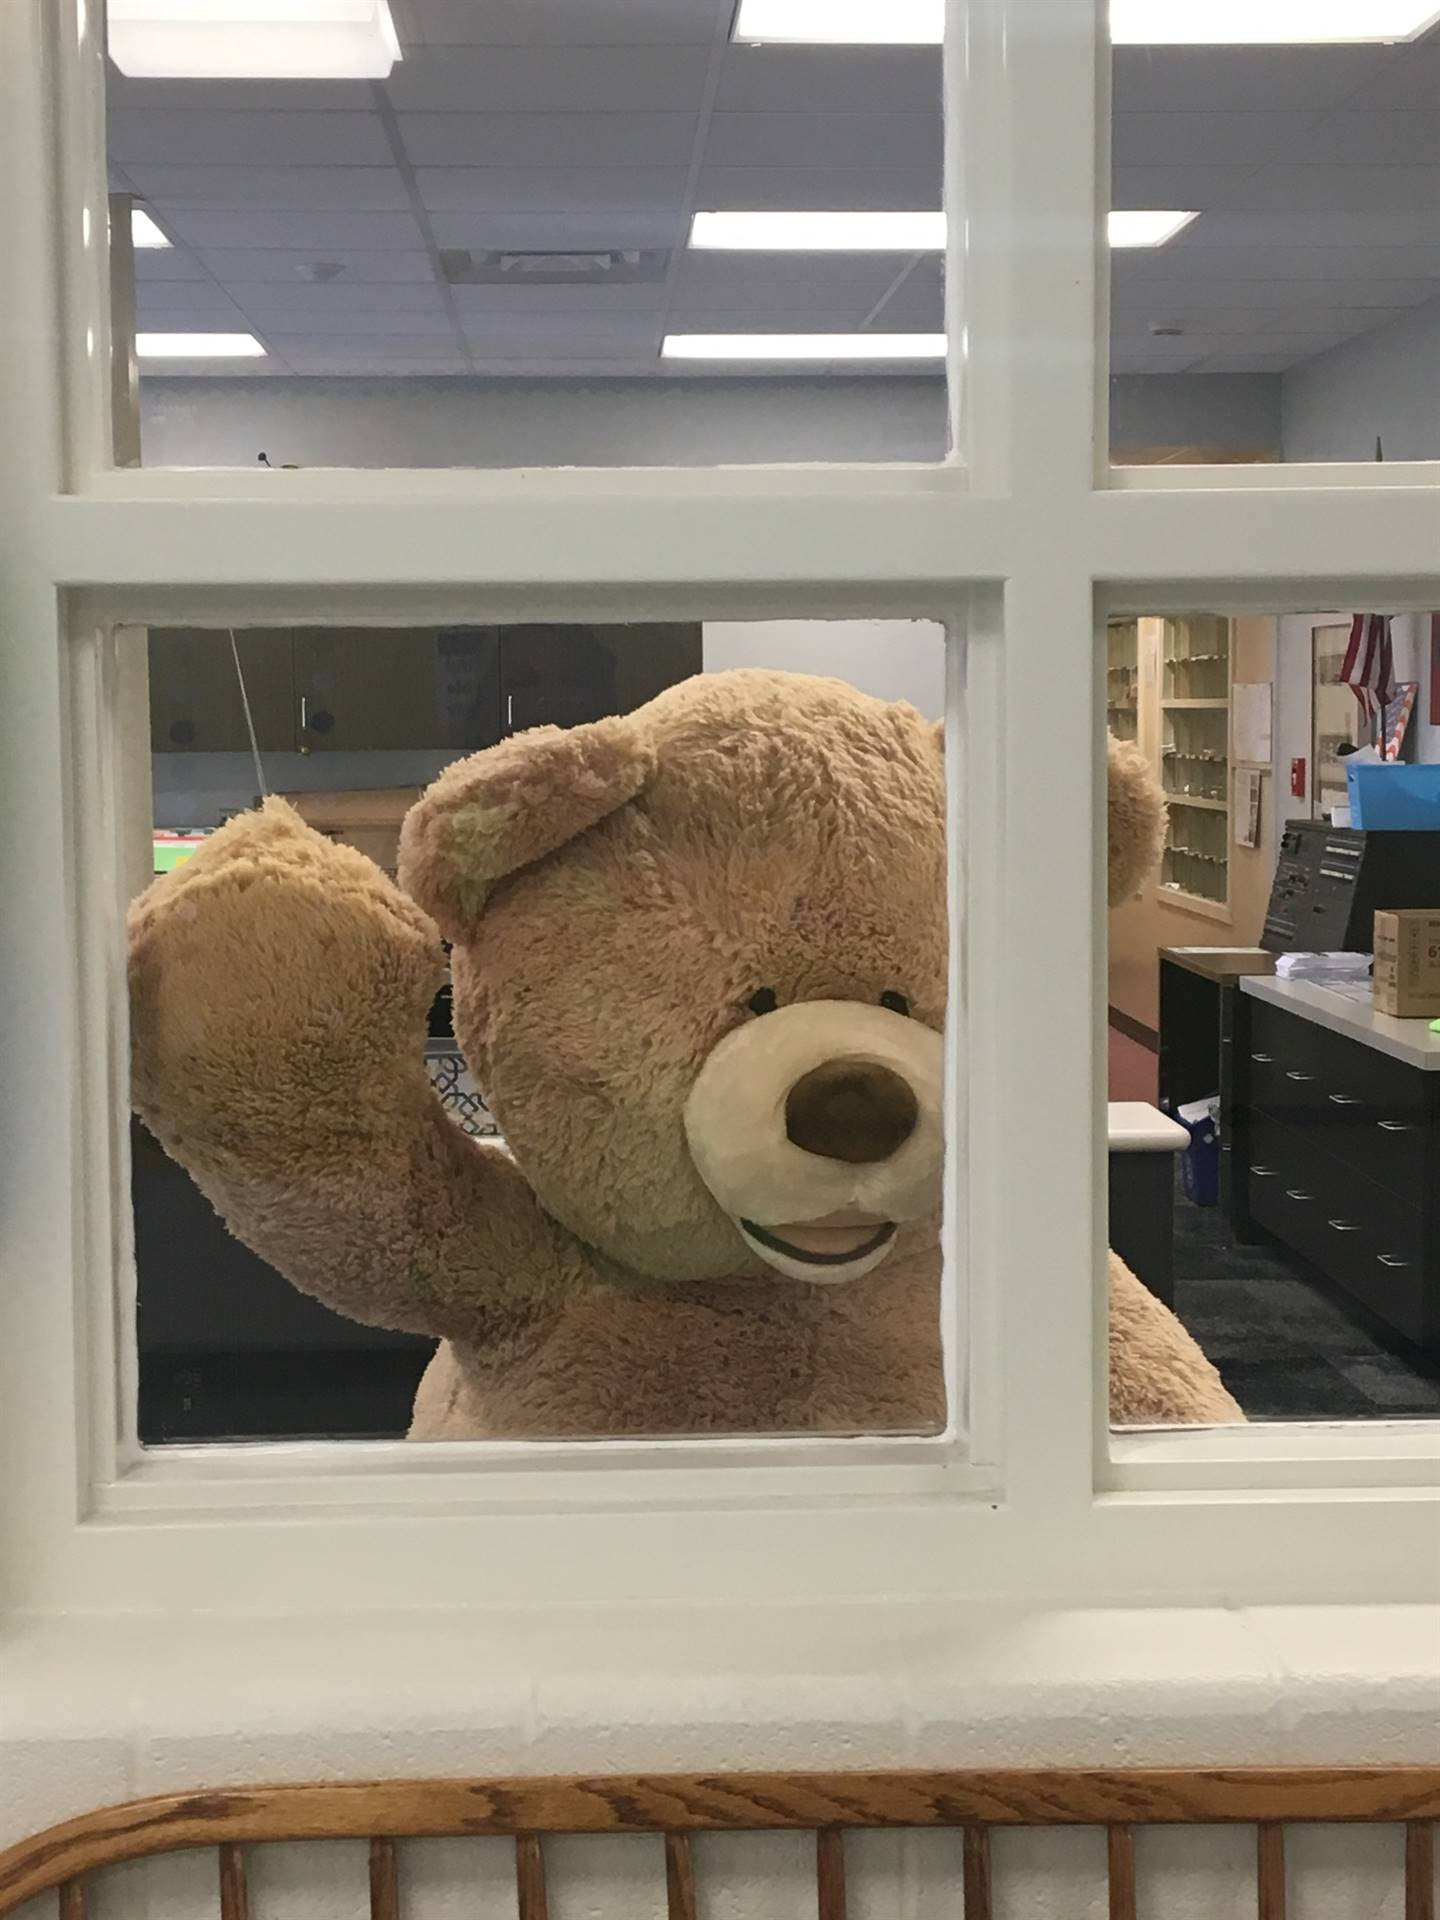 Teddy bear waving hello through window